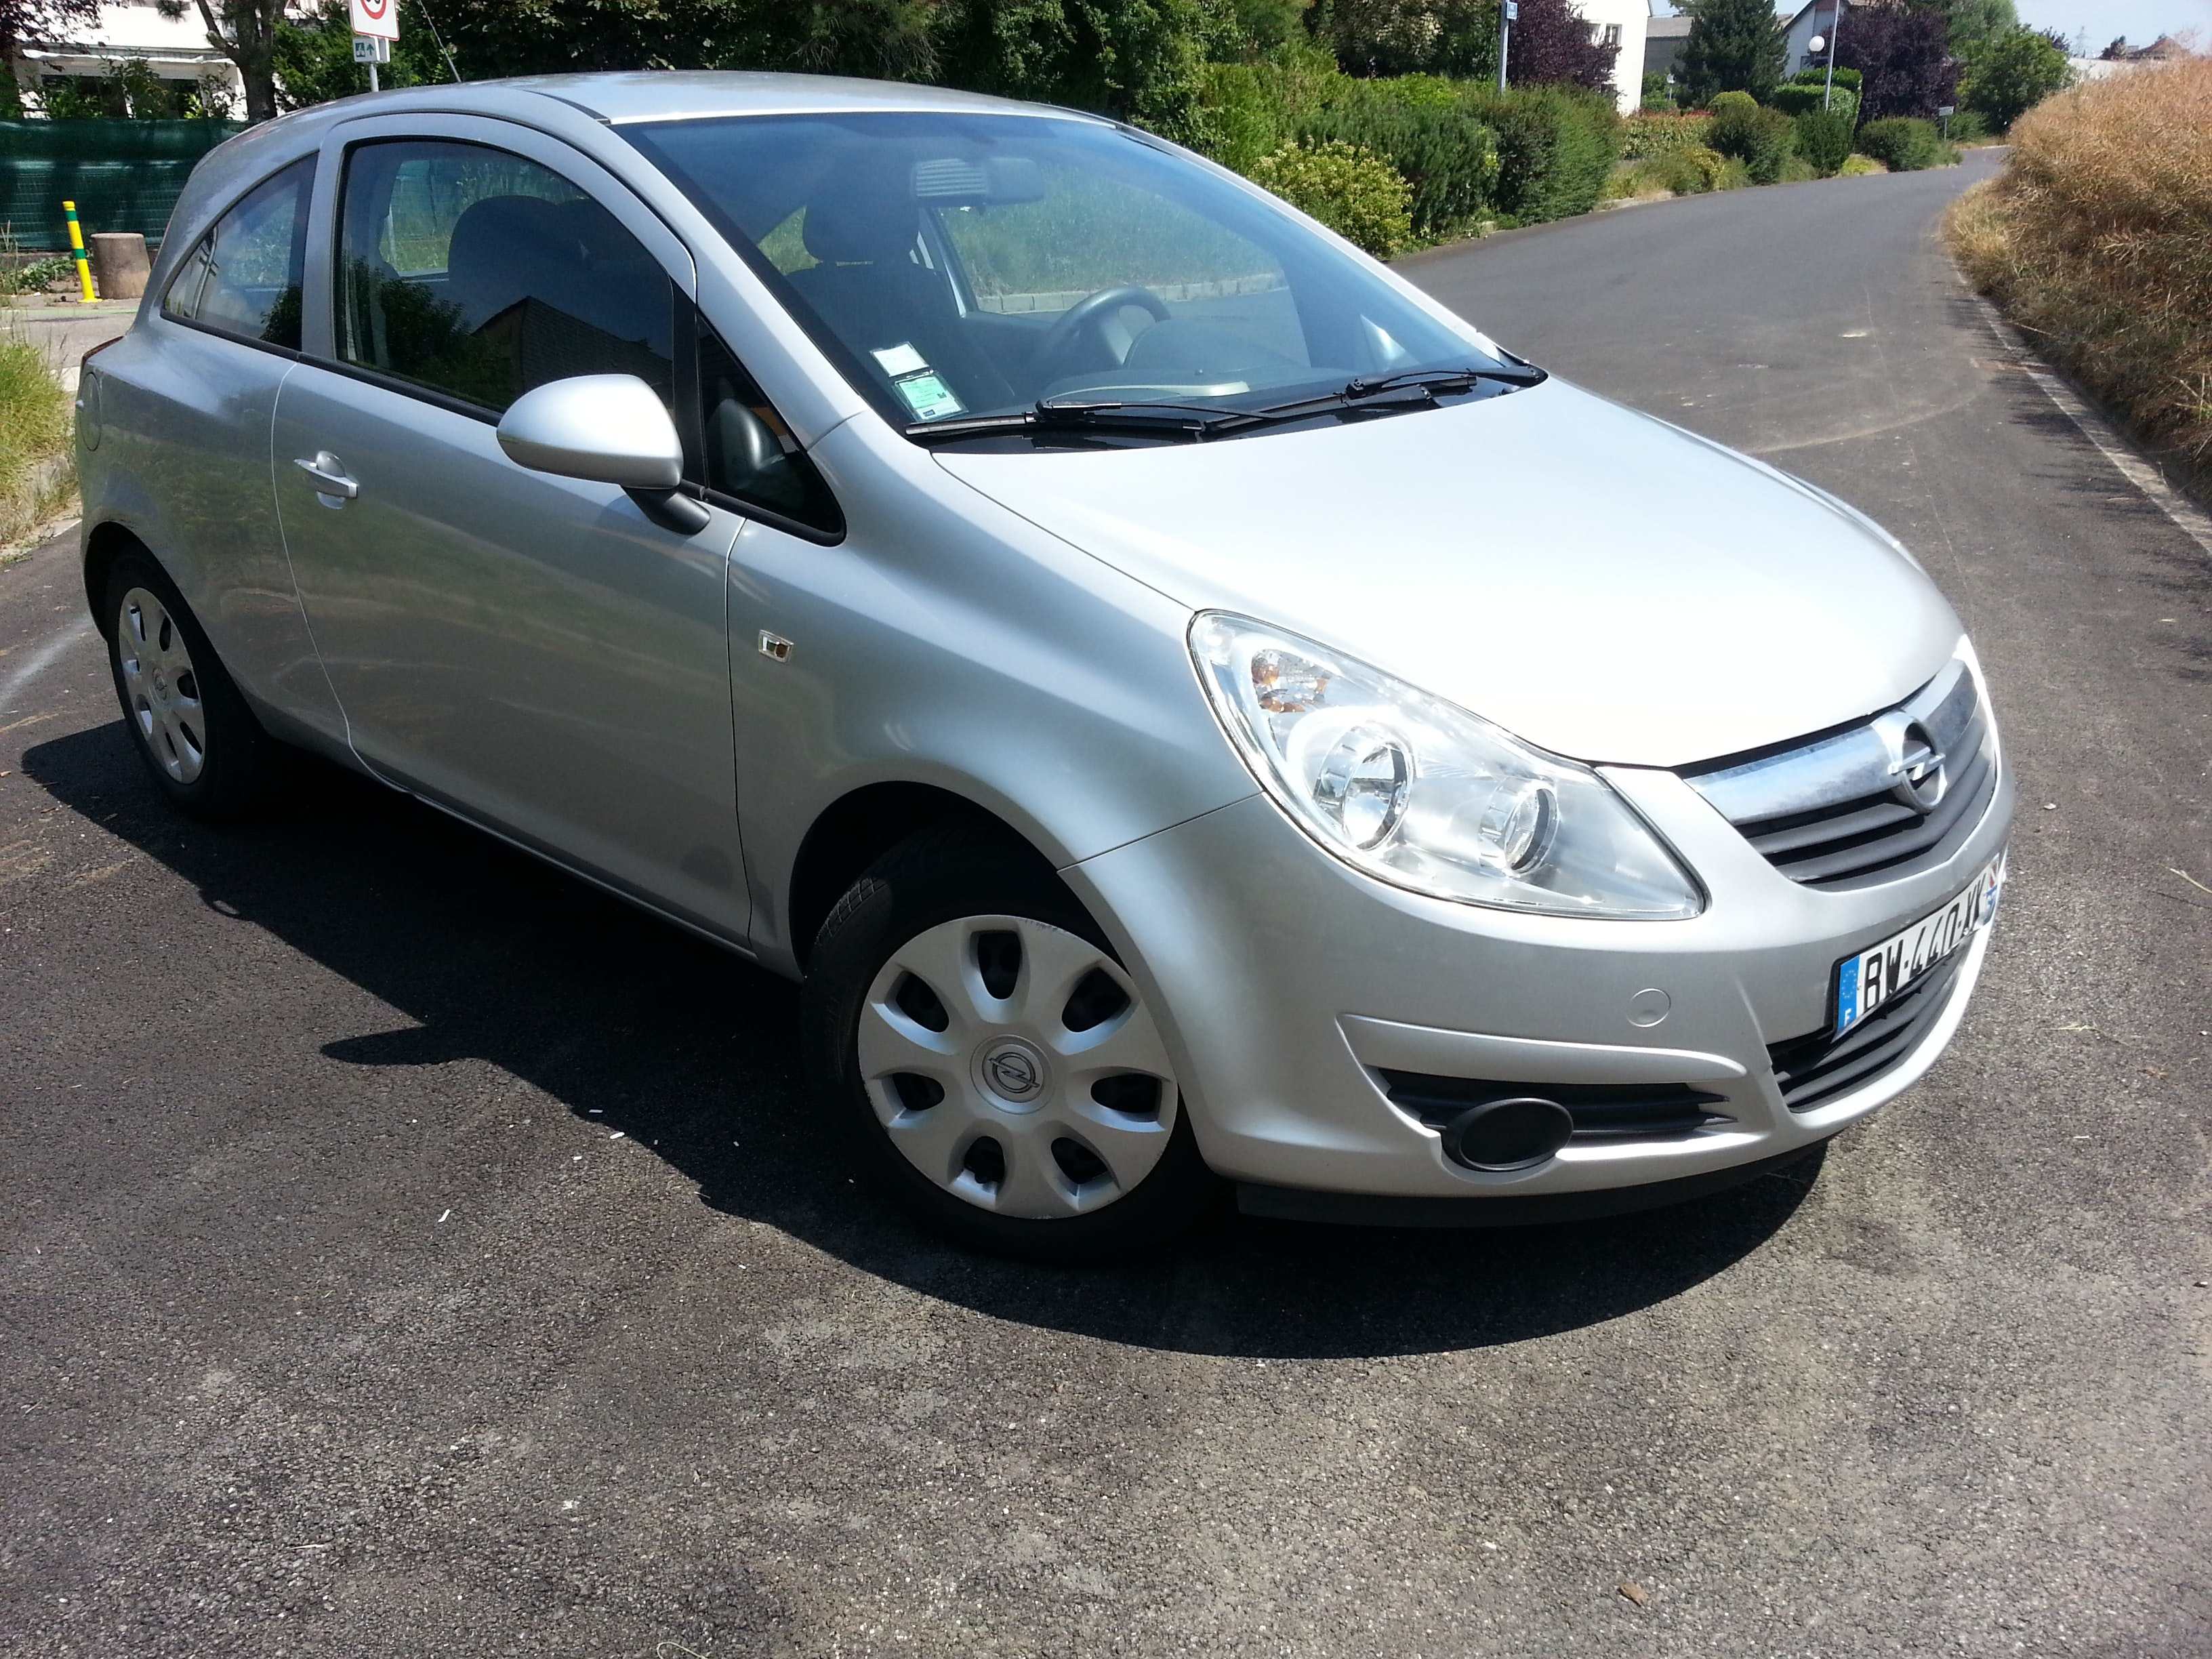 OPEL  CORSA Enjoy 1.2 16V grise , 2008, Essence